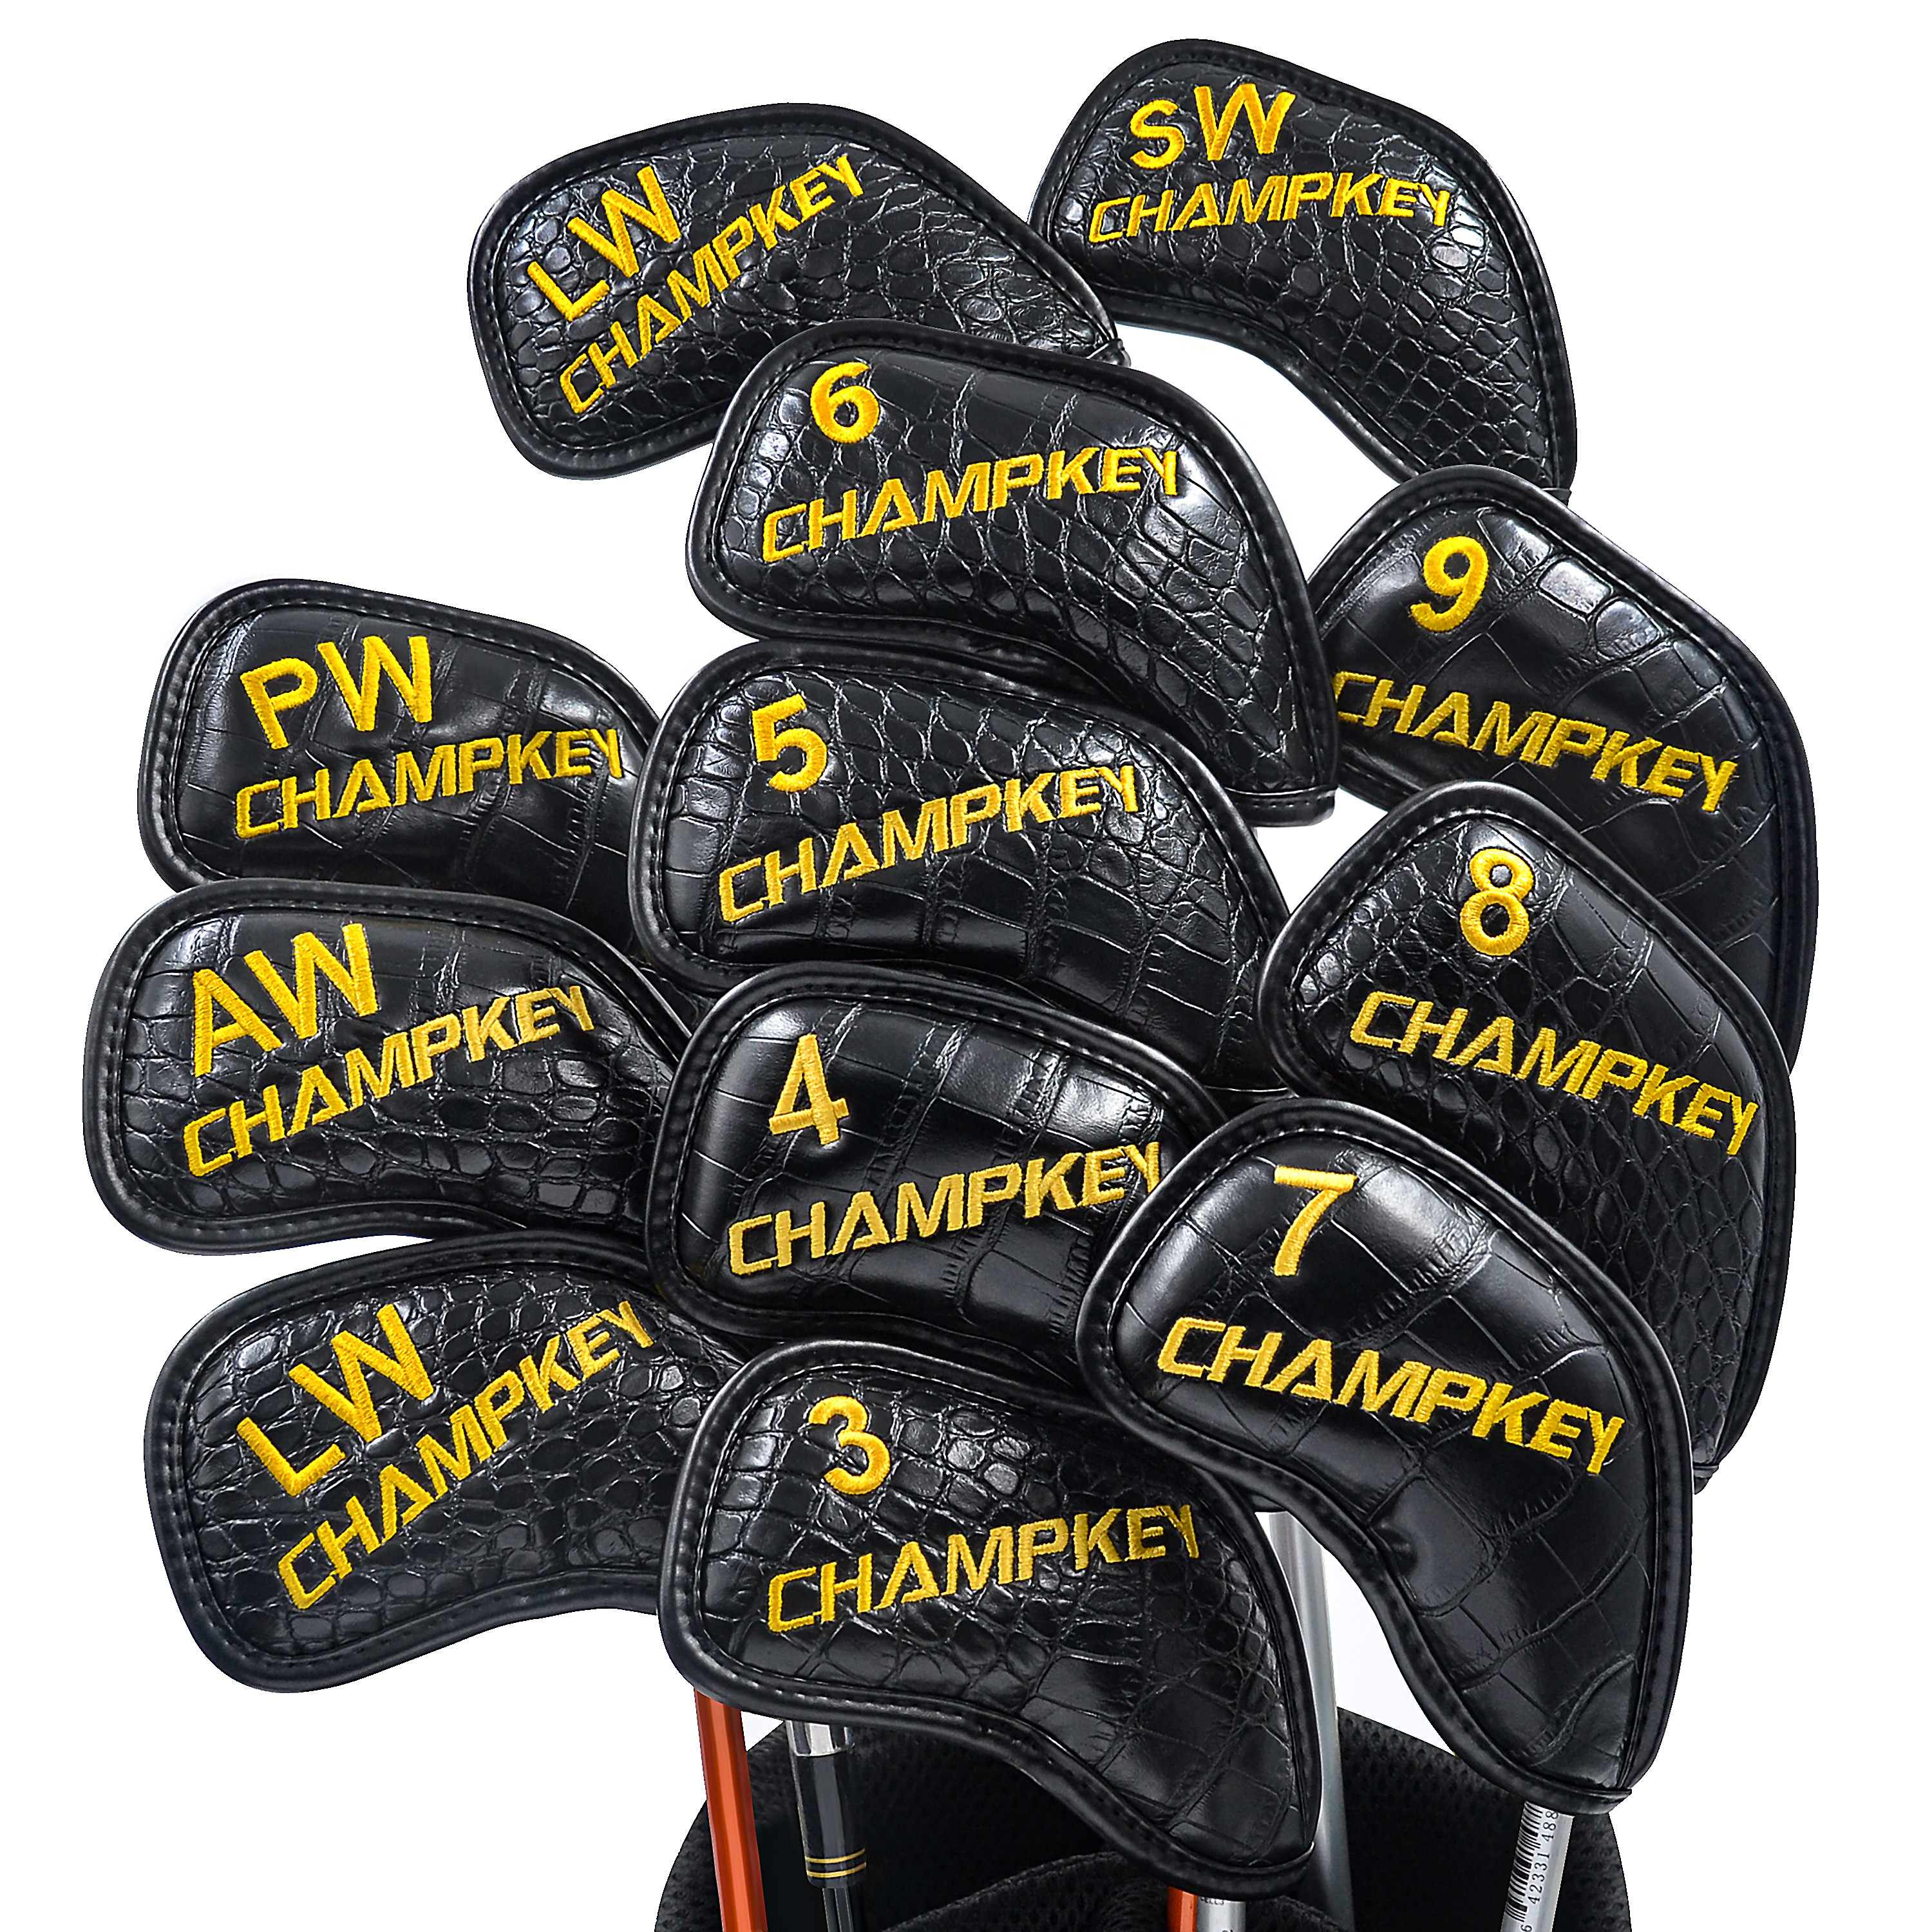 2019 NEW Champkey Monster Golf Iron Head Cover Pack Of 12pcs - Premium Polyurethane Plus Memory Material Club Covers